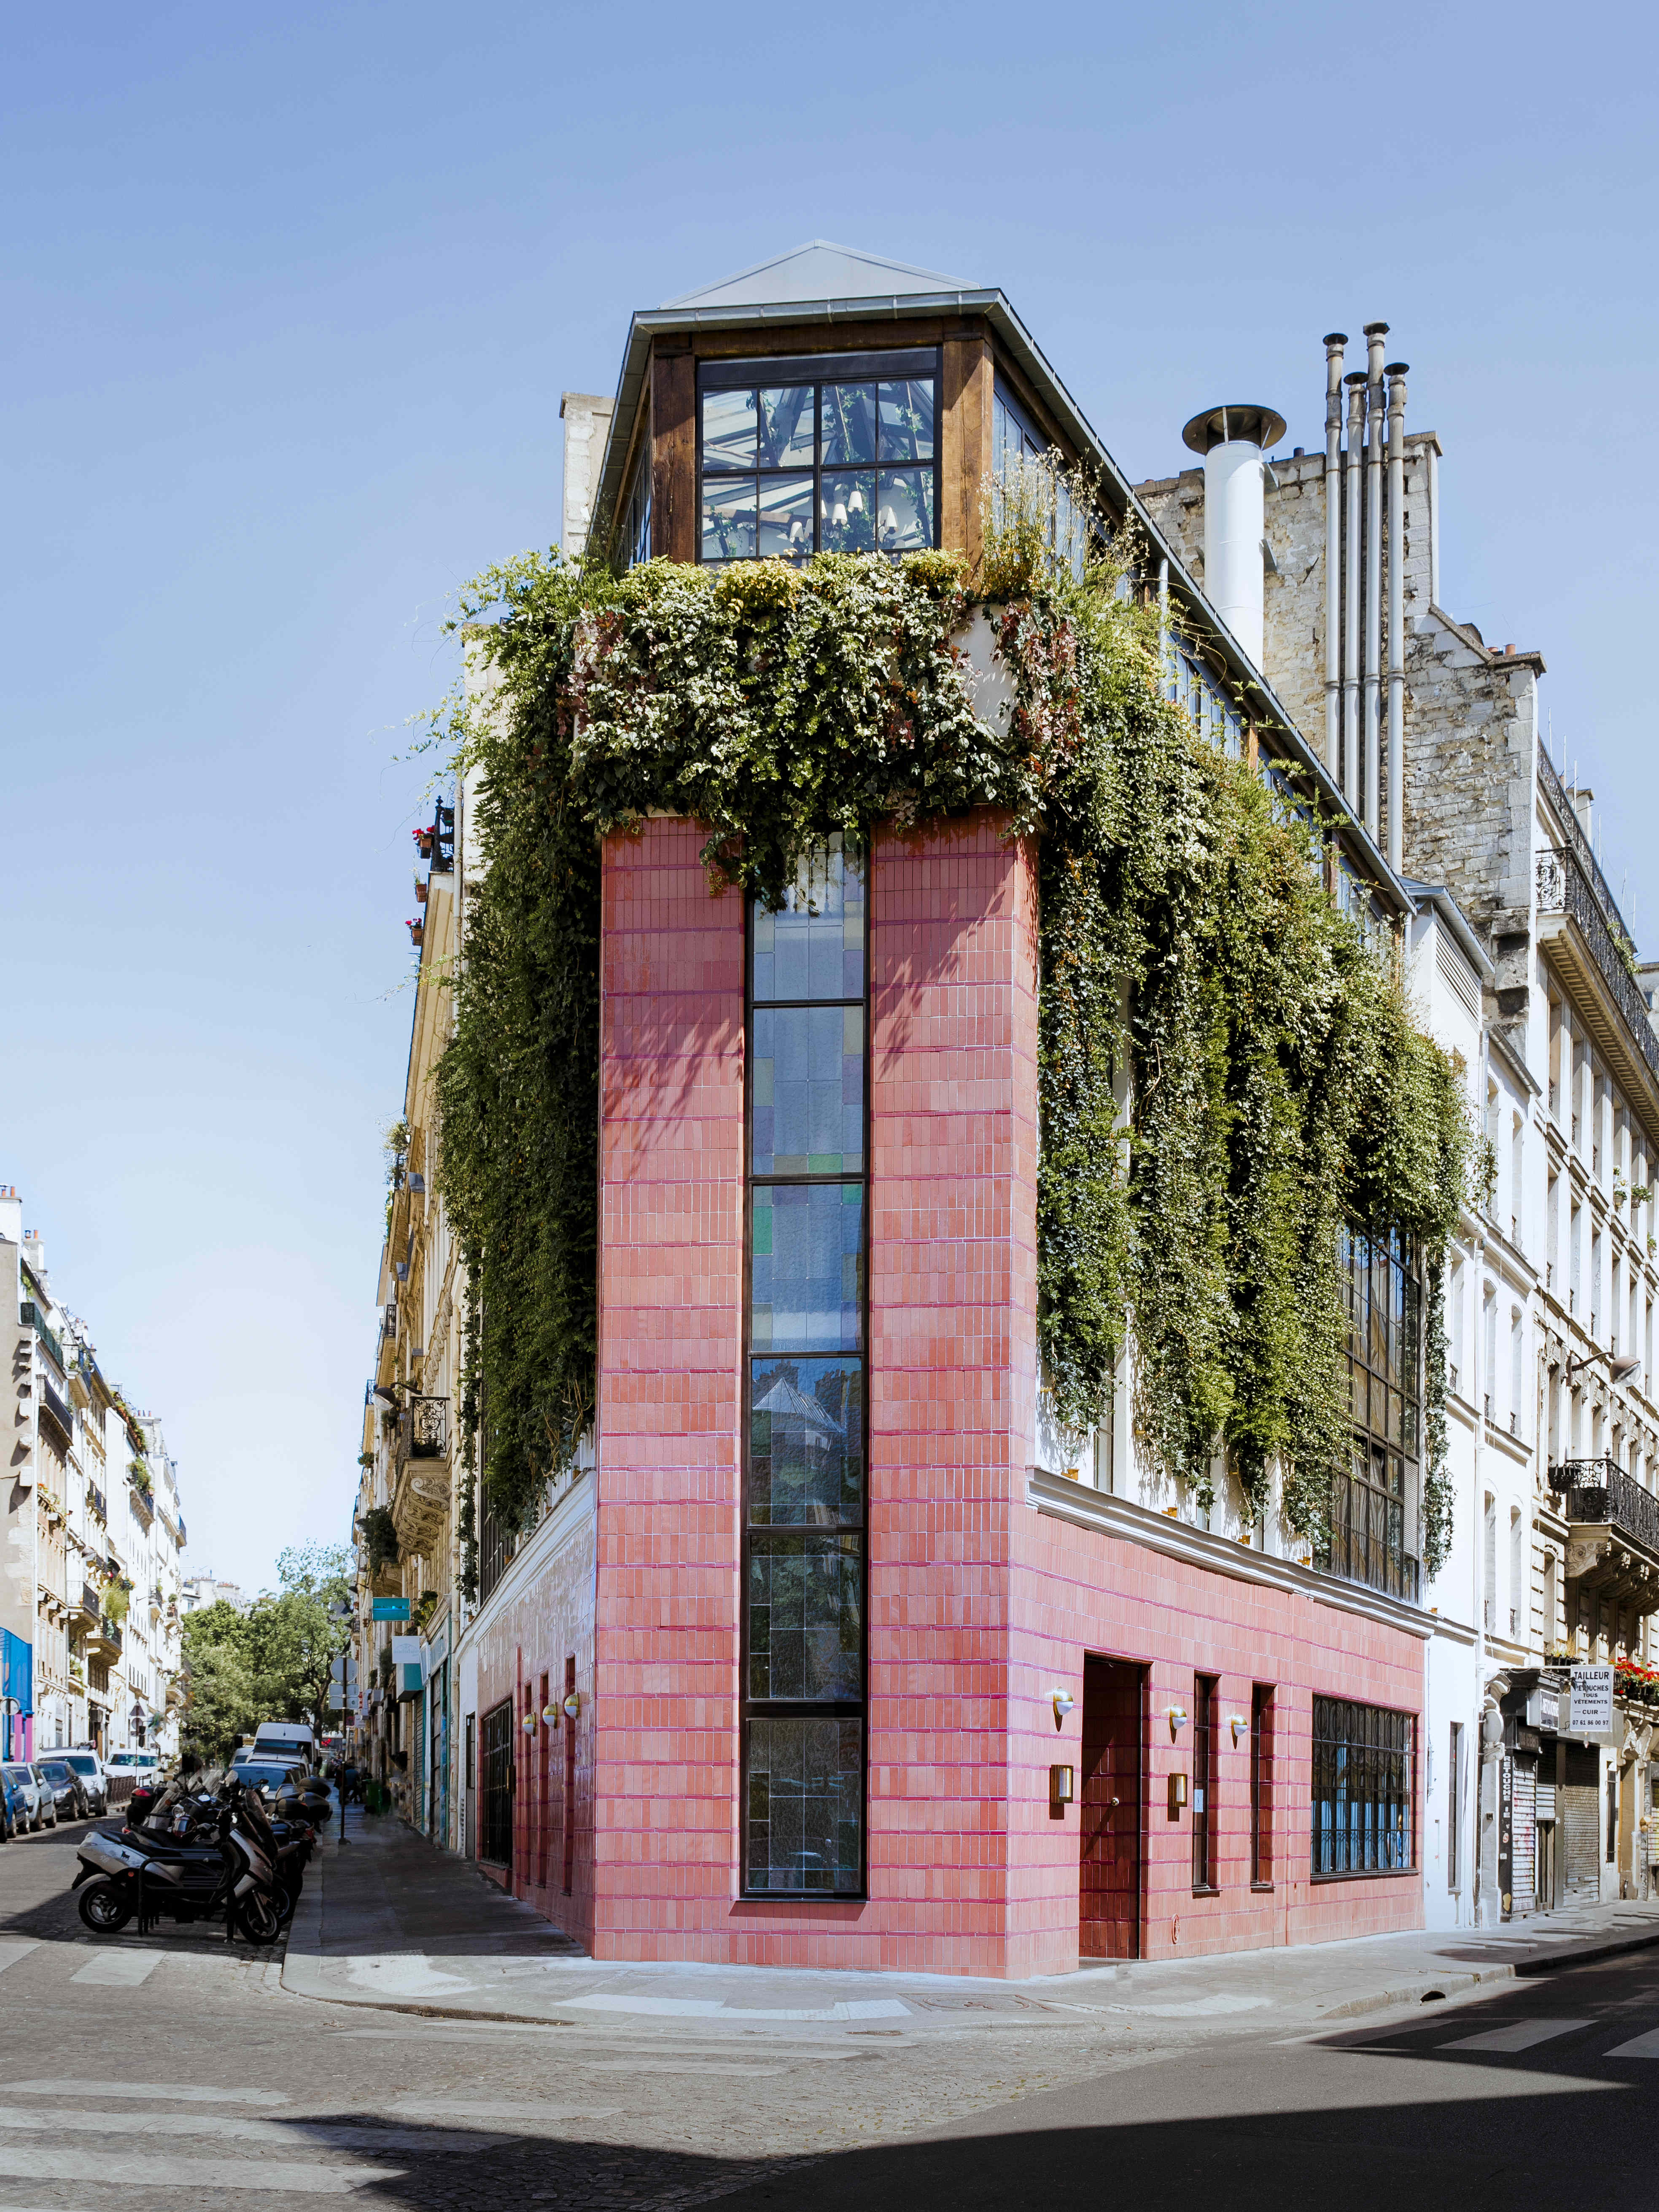 The exterior of Pink Mamma in Paris is actually pink and covered in plants.